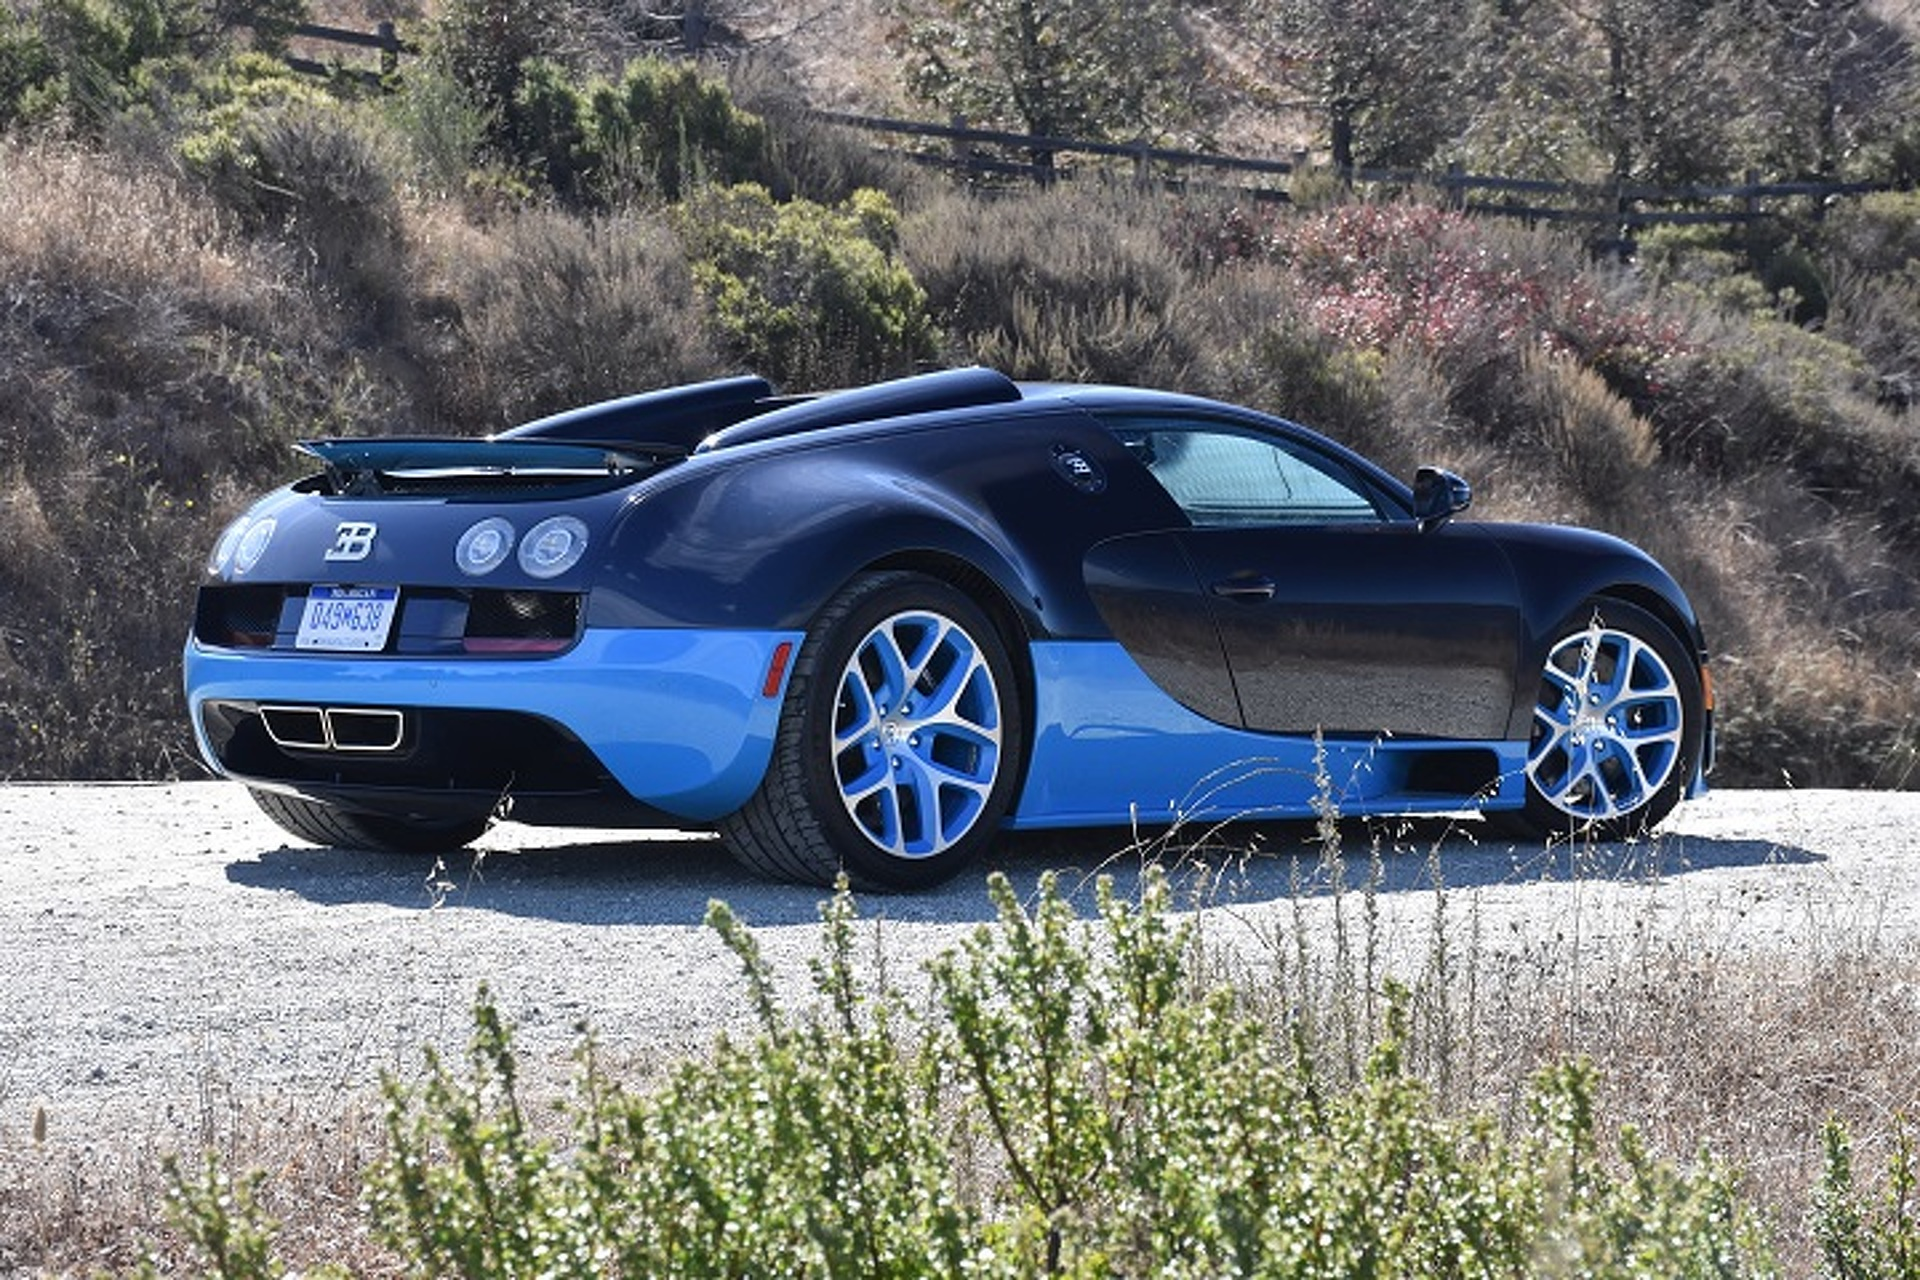 the-bugatti-veyron-is-the-closest-youll-get-to-a-fighter-jet-first-drive Cool Bugatti Veyron Price In Uae 2015 Cars Trend